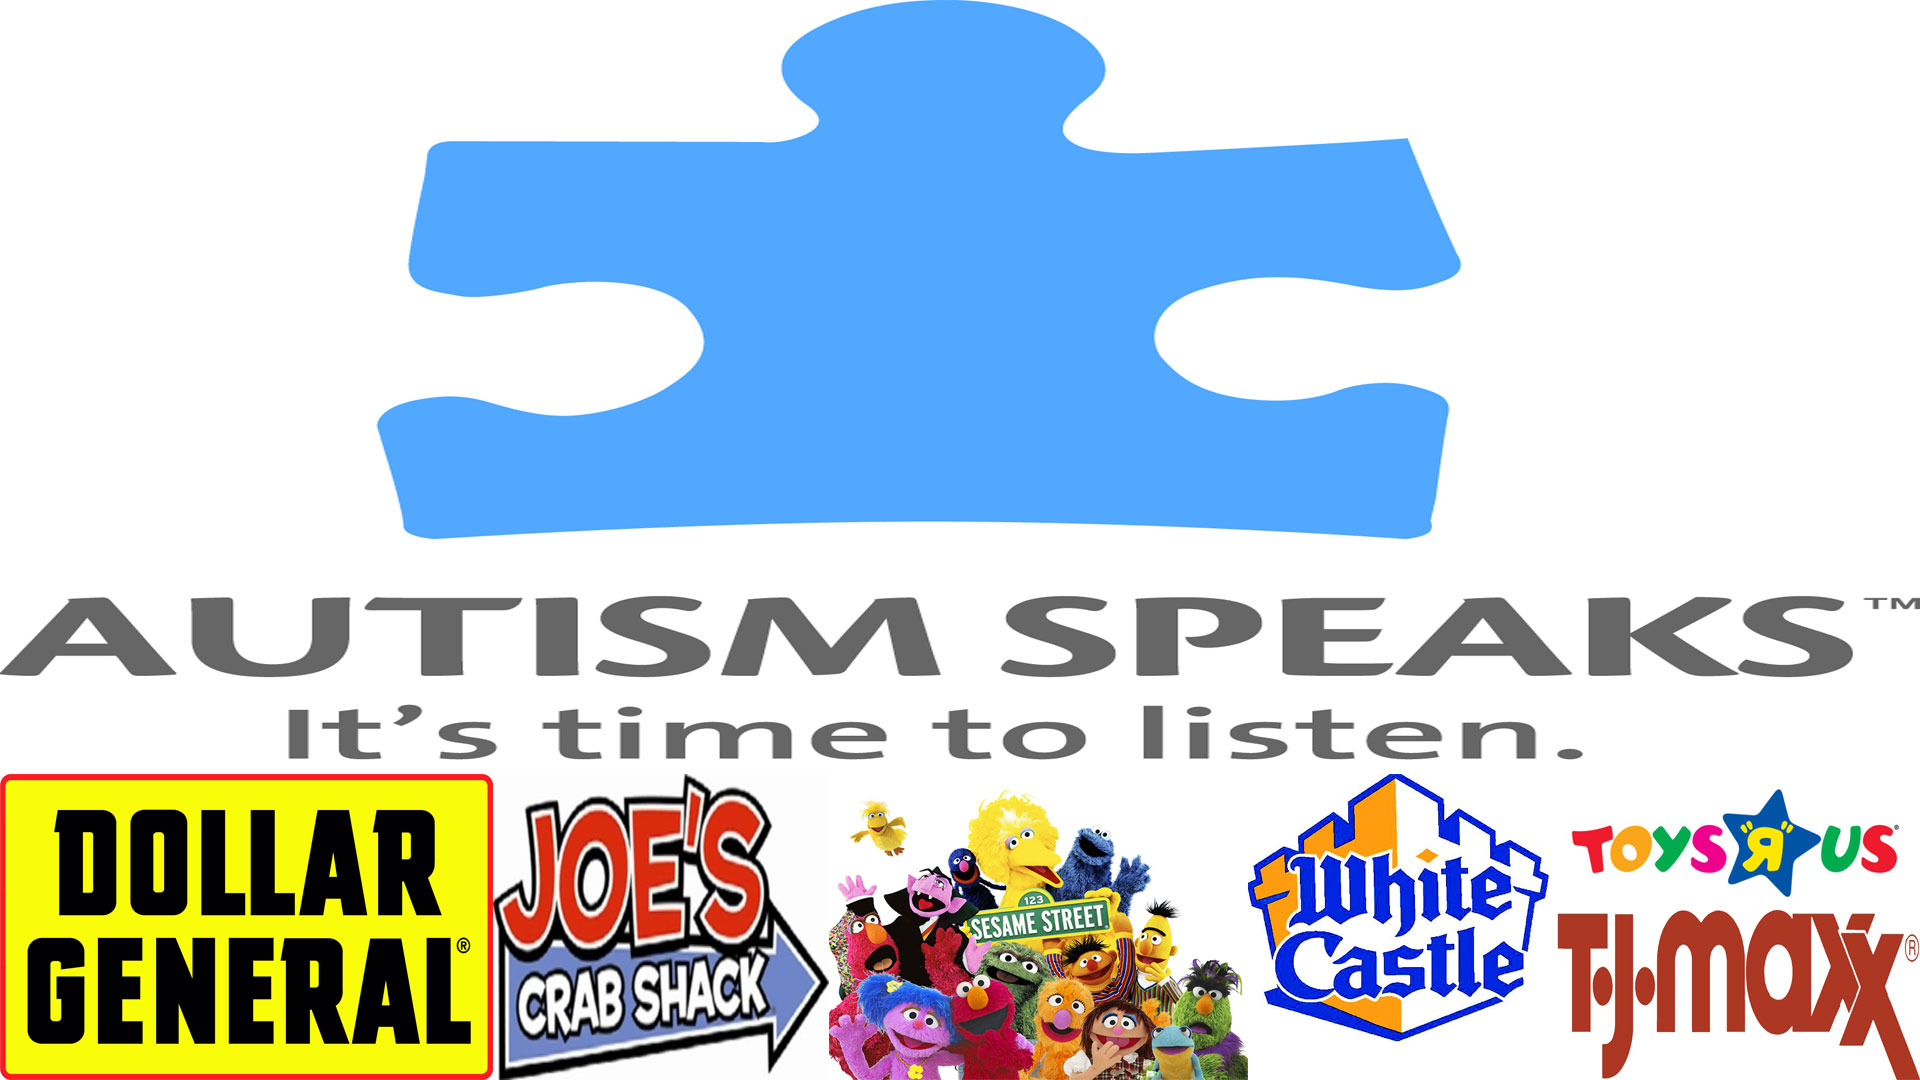 APRIL IS AUTISM AWARENESS MONTH, www.AutismSpeaks.org